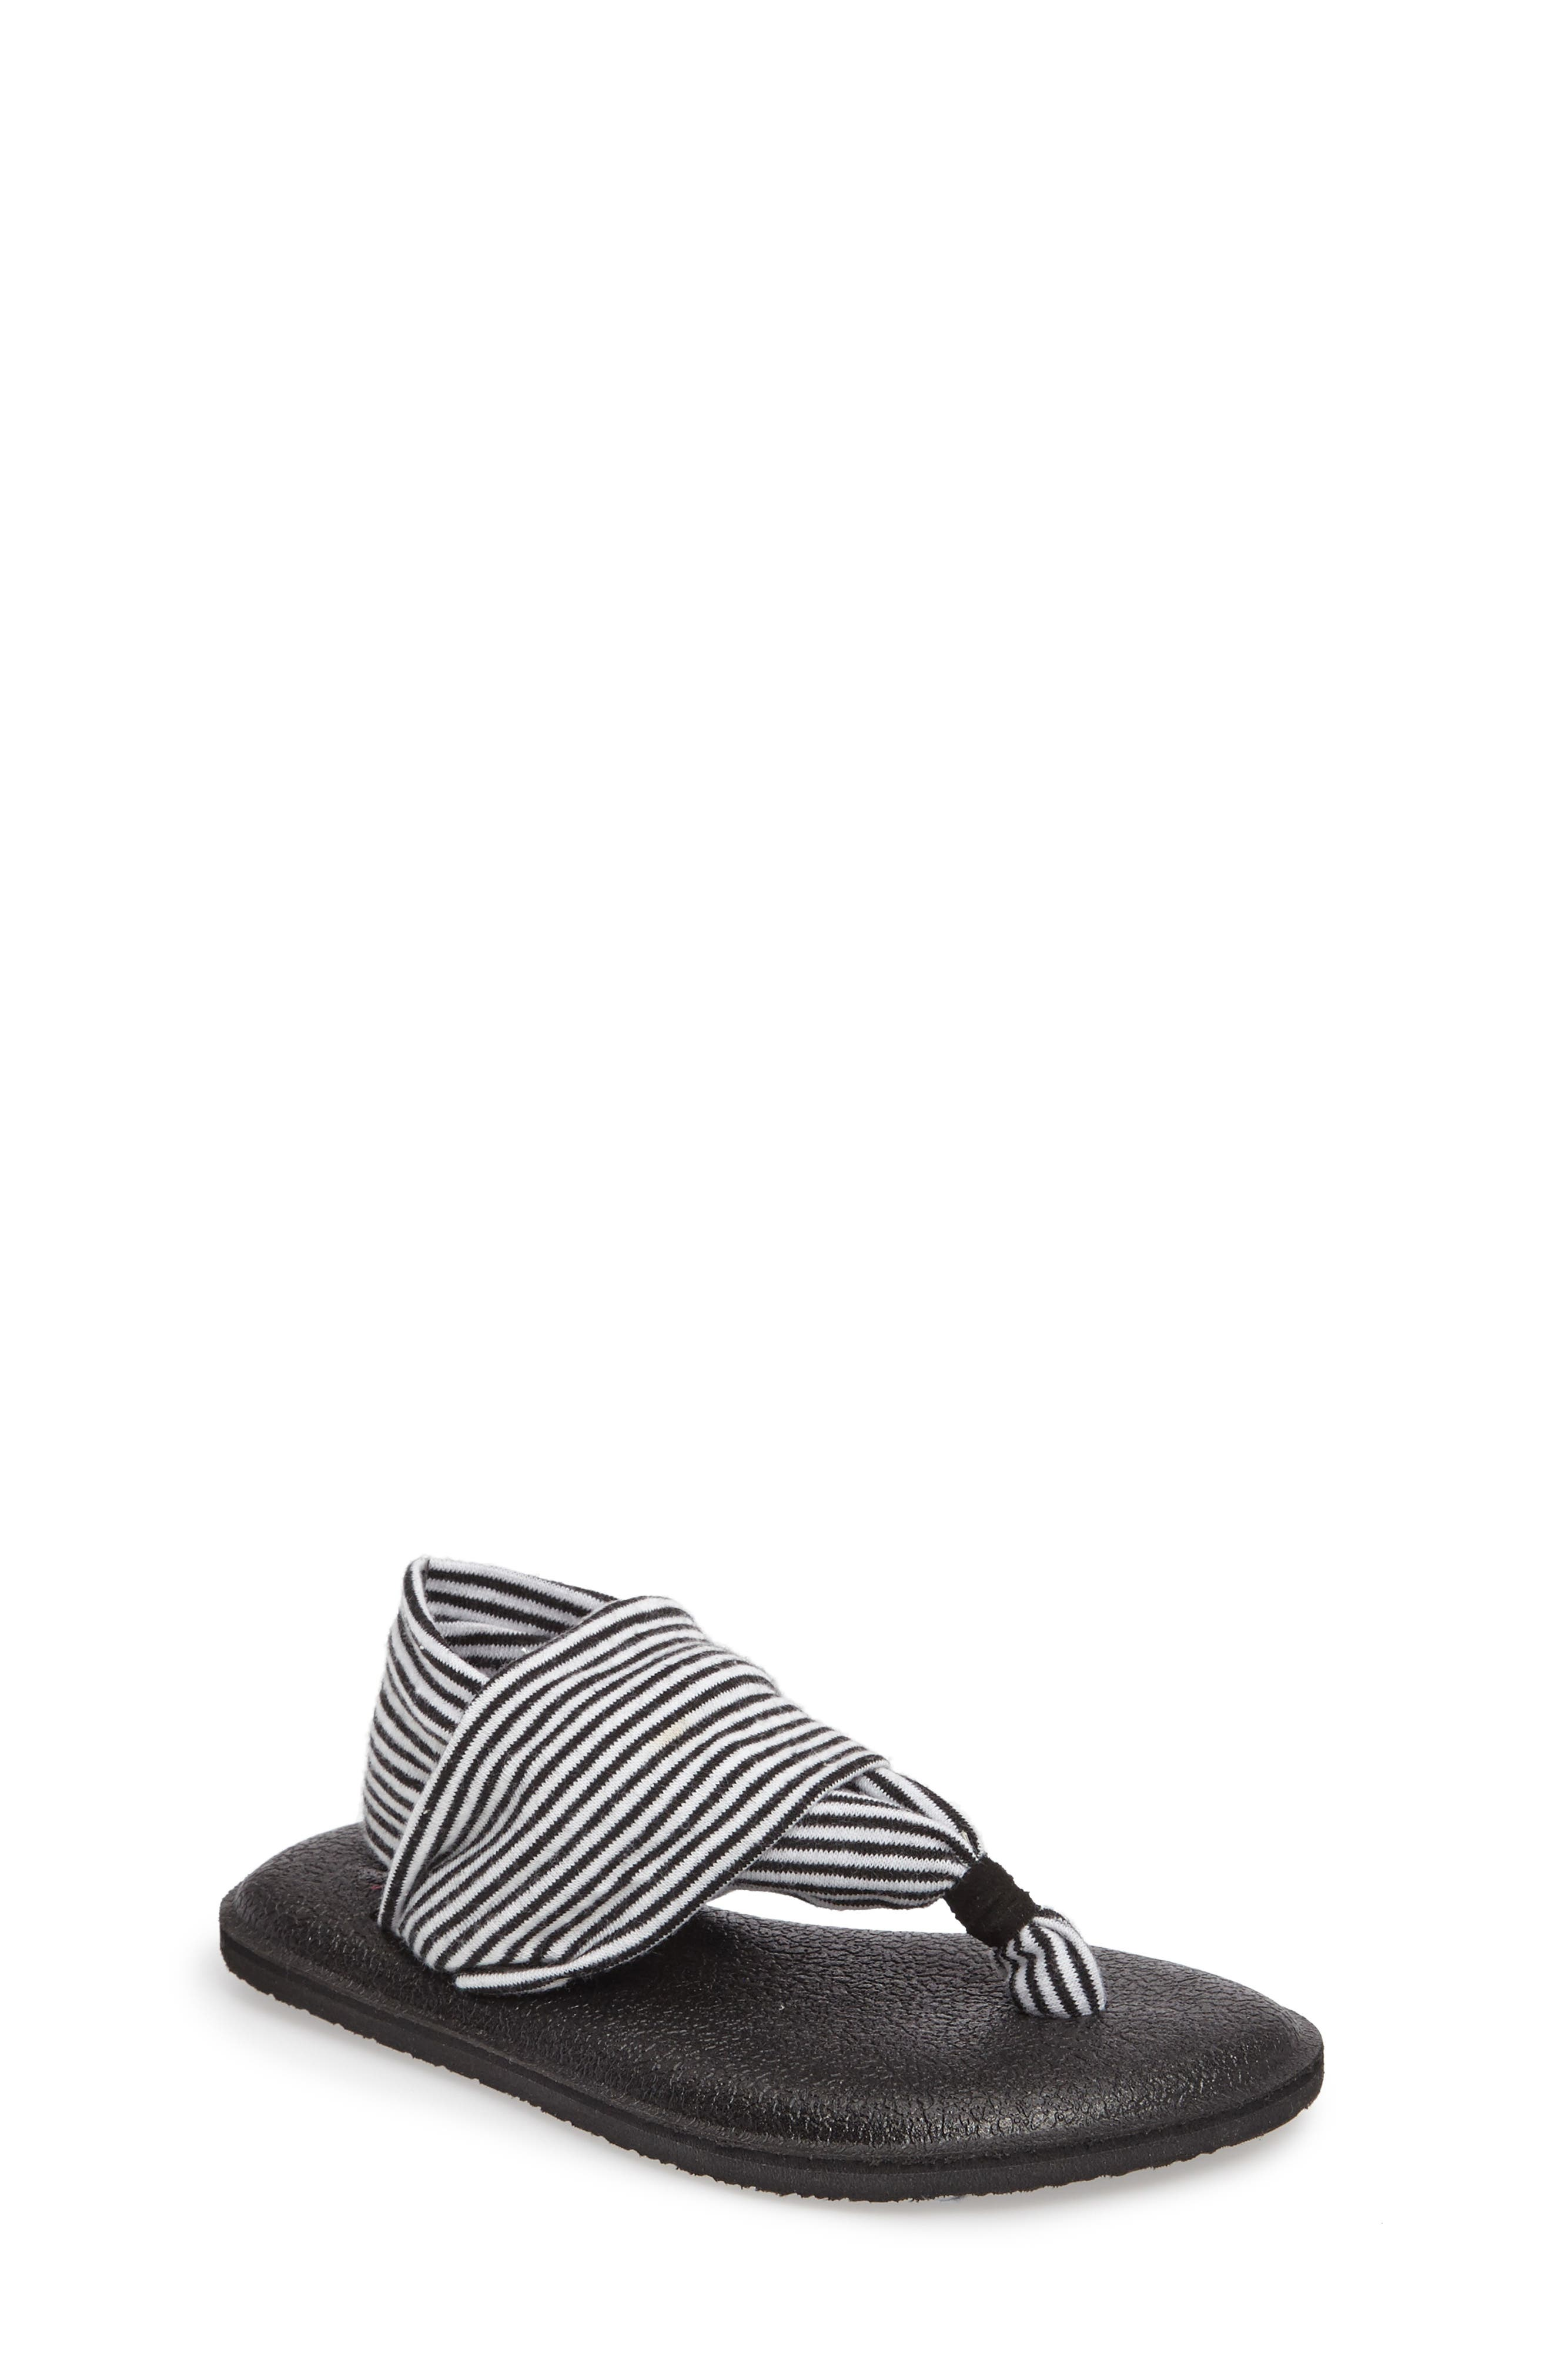 SANUK 'Yoga Sling' Sandal, Main, color, BLACK/ WHITE STRIPE